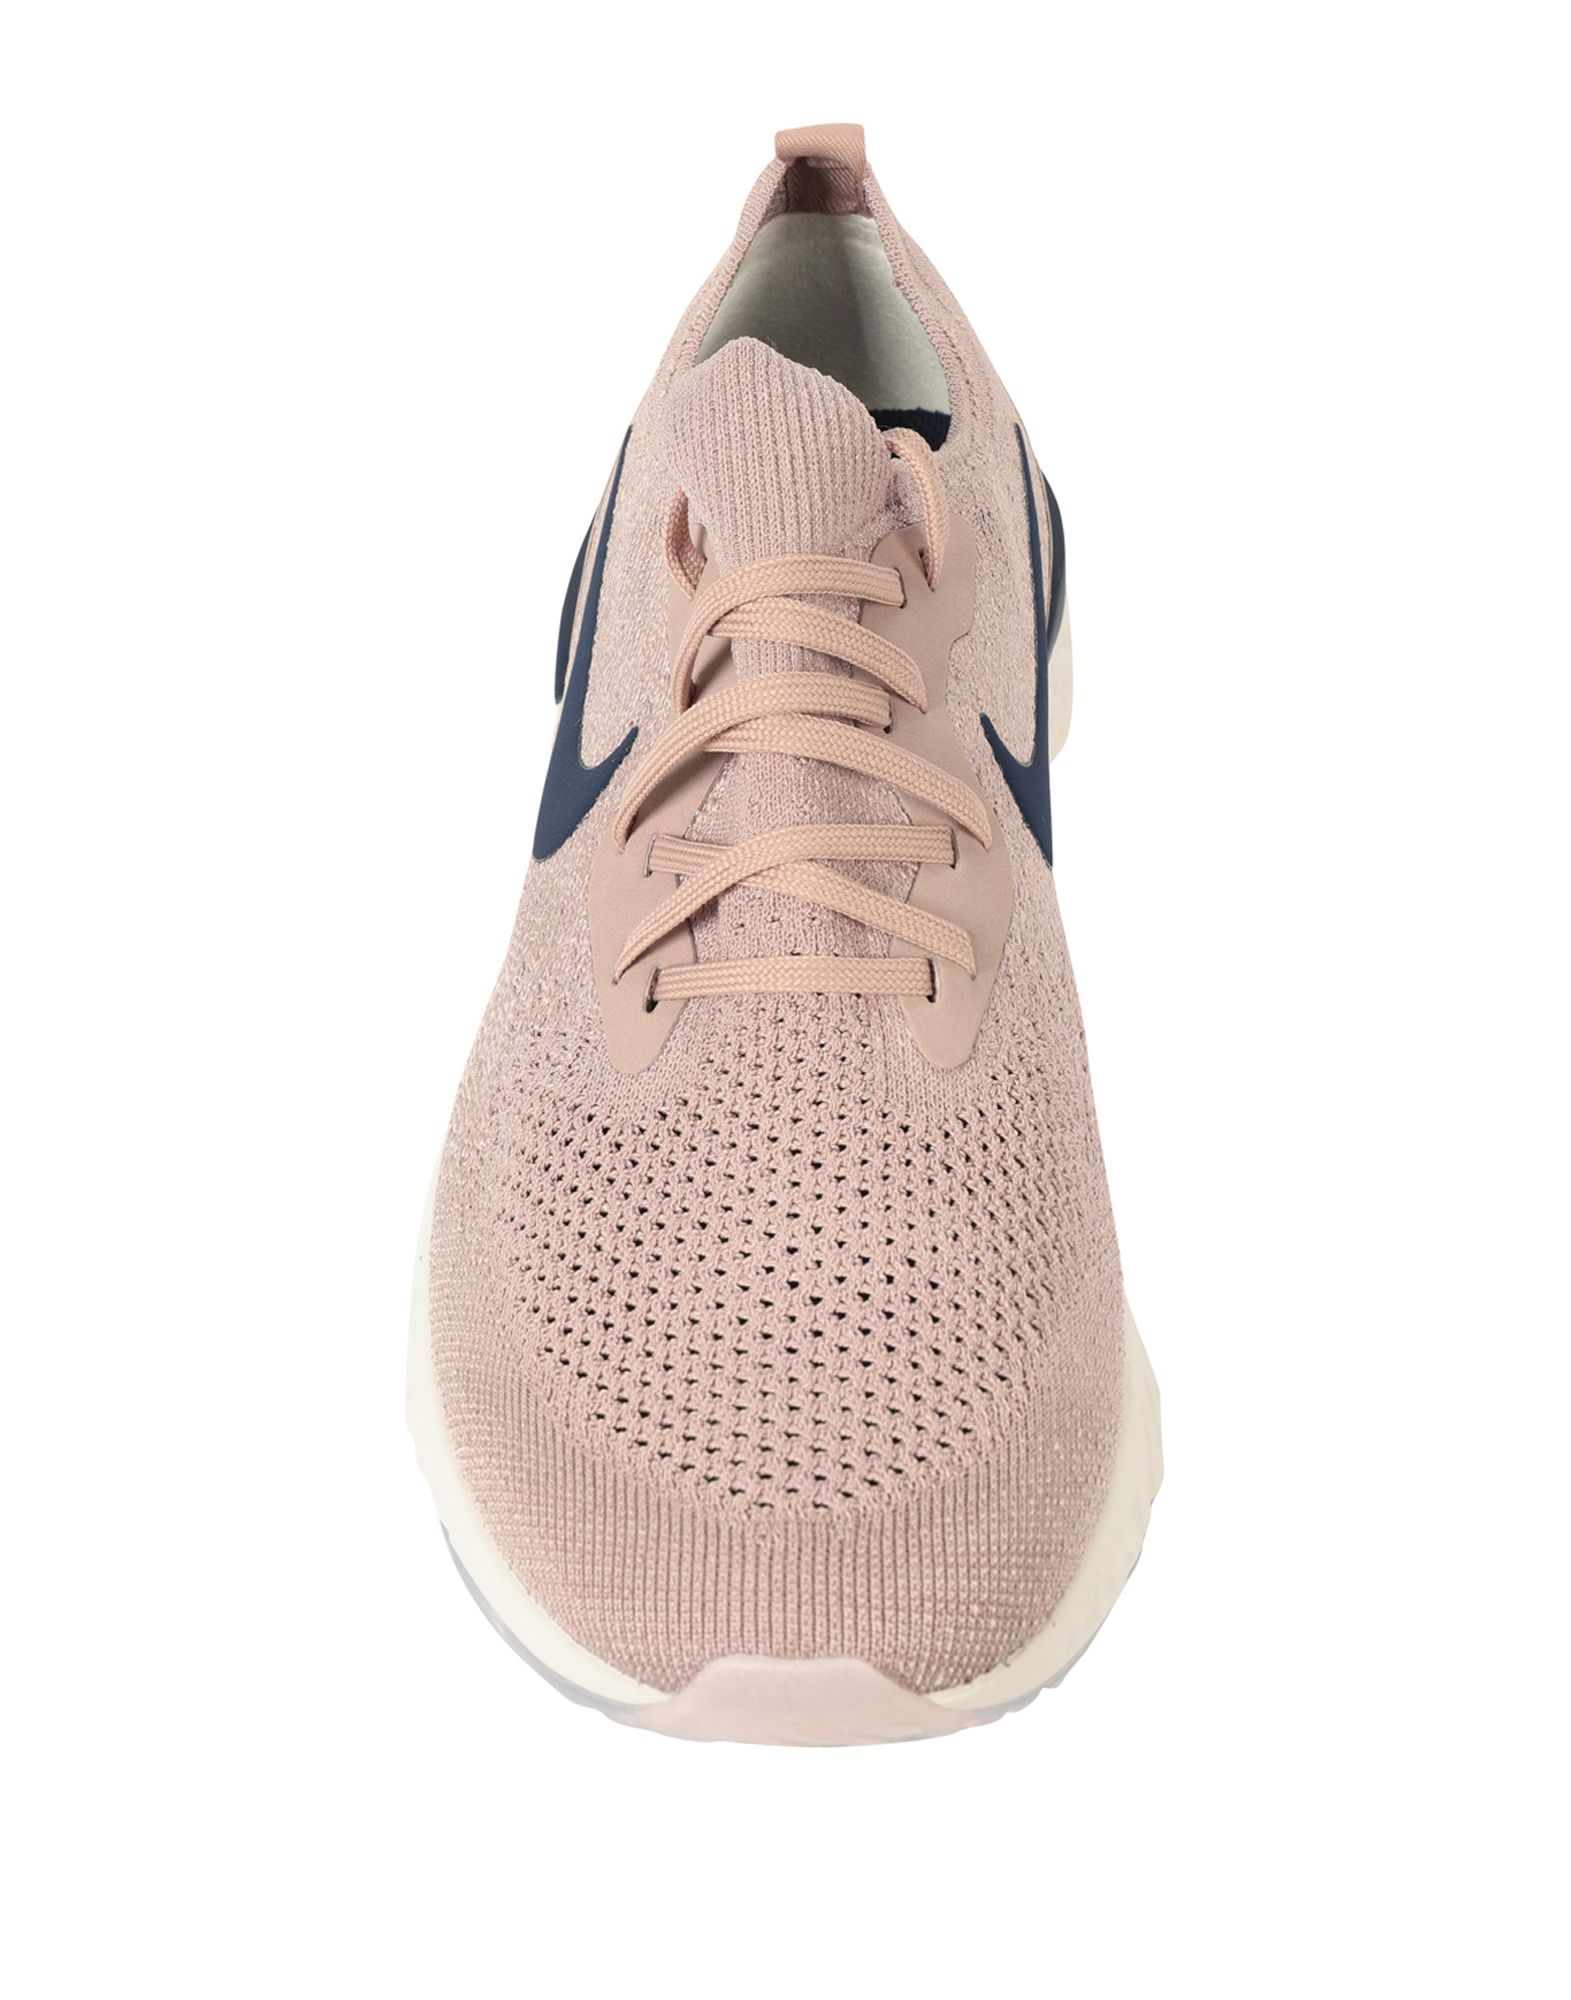 Nike Nike Nike Epic React Flyknit - Sneakers - Men Nike Sneakers online on  United Kingdom - 11543846HP 48b66e